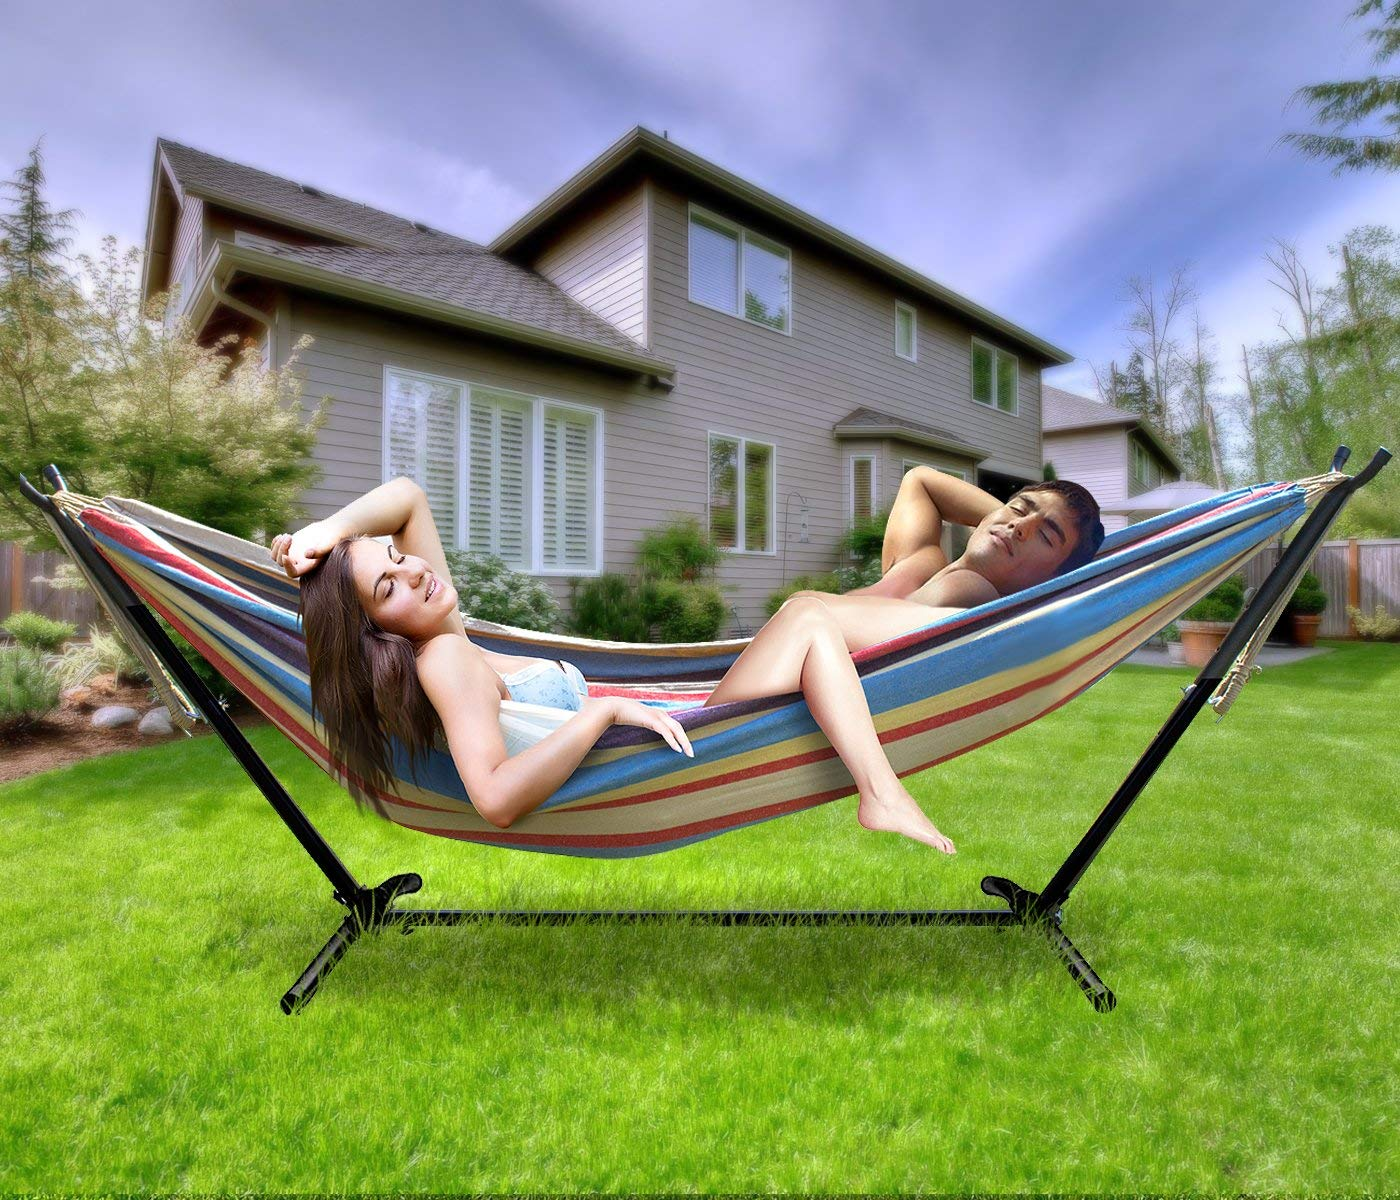 Sorbus Double Hammock with Steel Stand Two Person Adjustable Hammock Bed – Storage Carrying Case Included